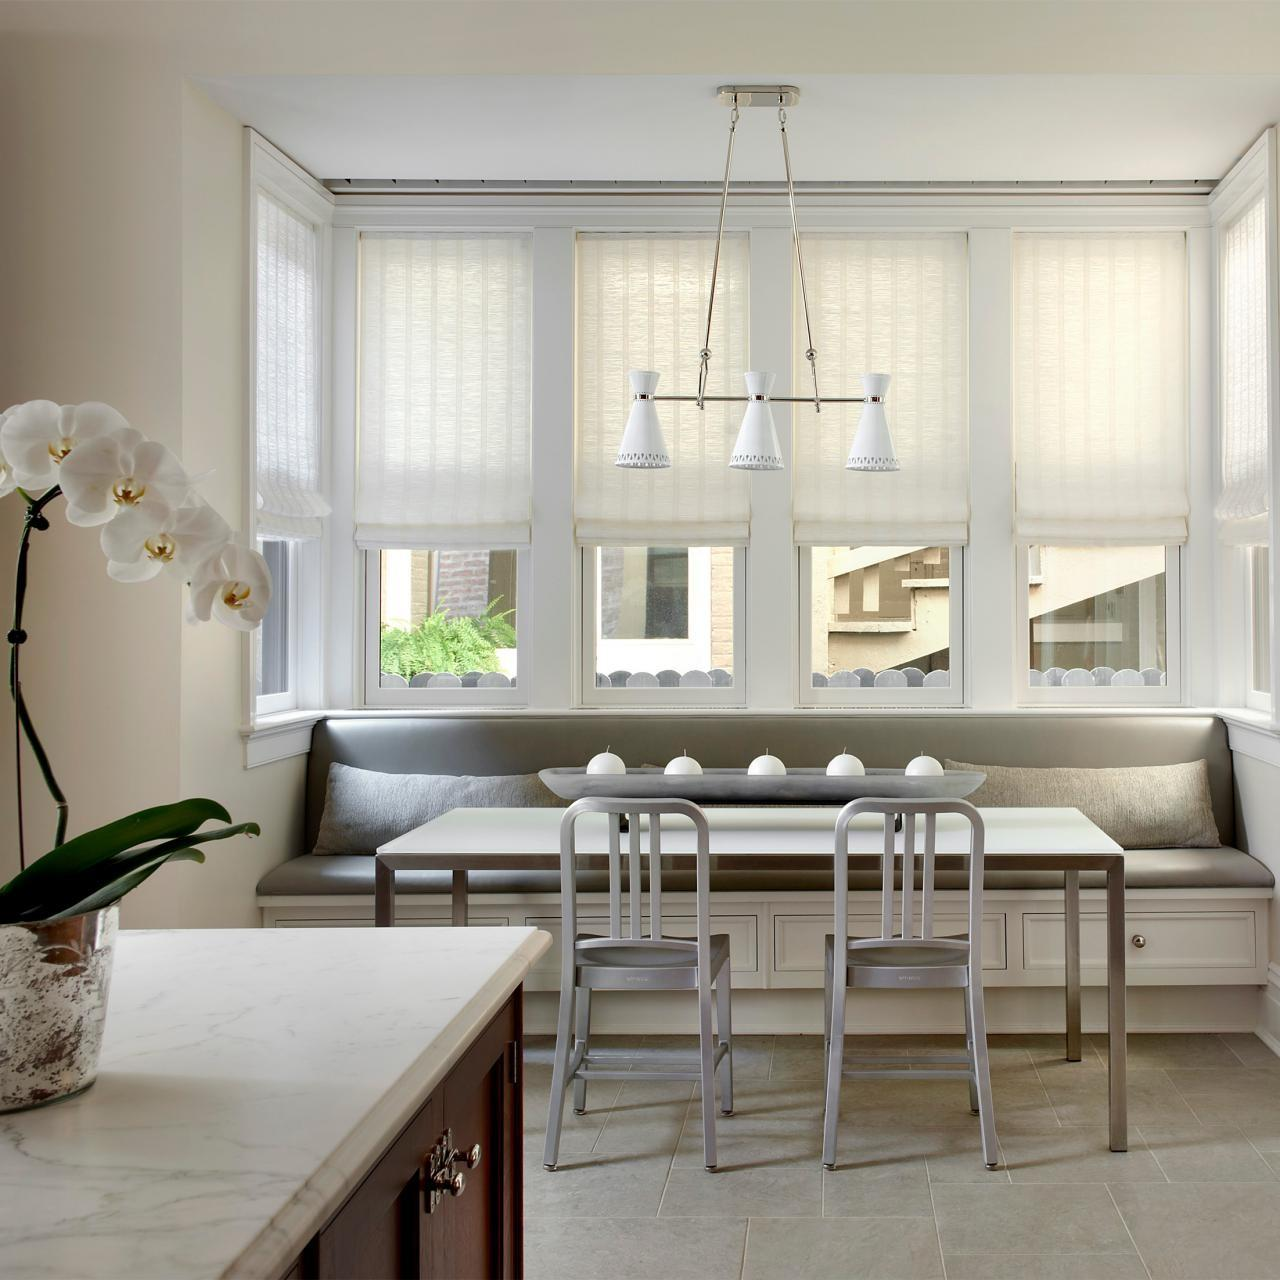 Commercial Banquette Seating Design